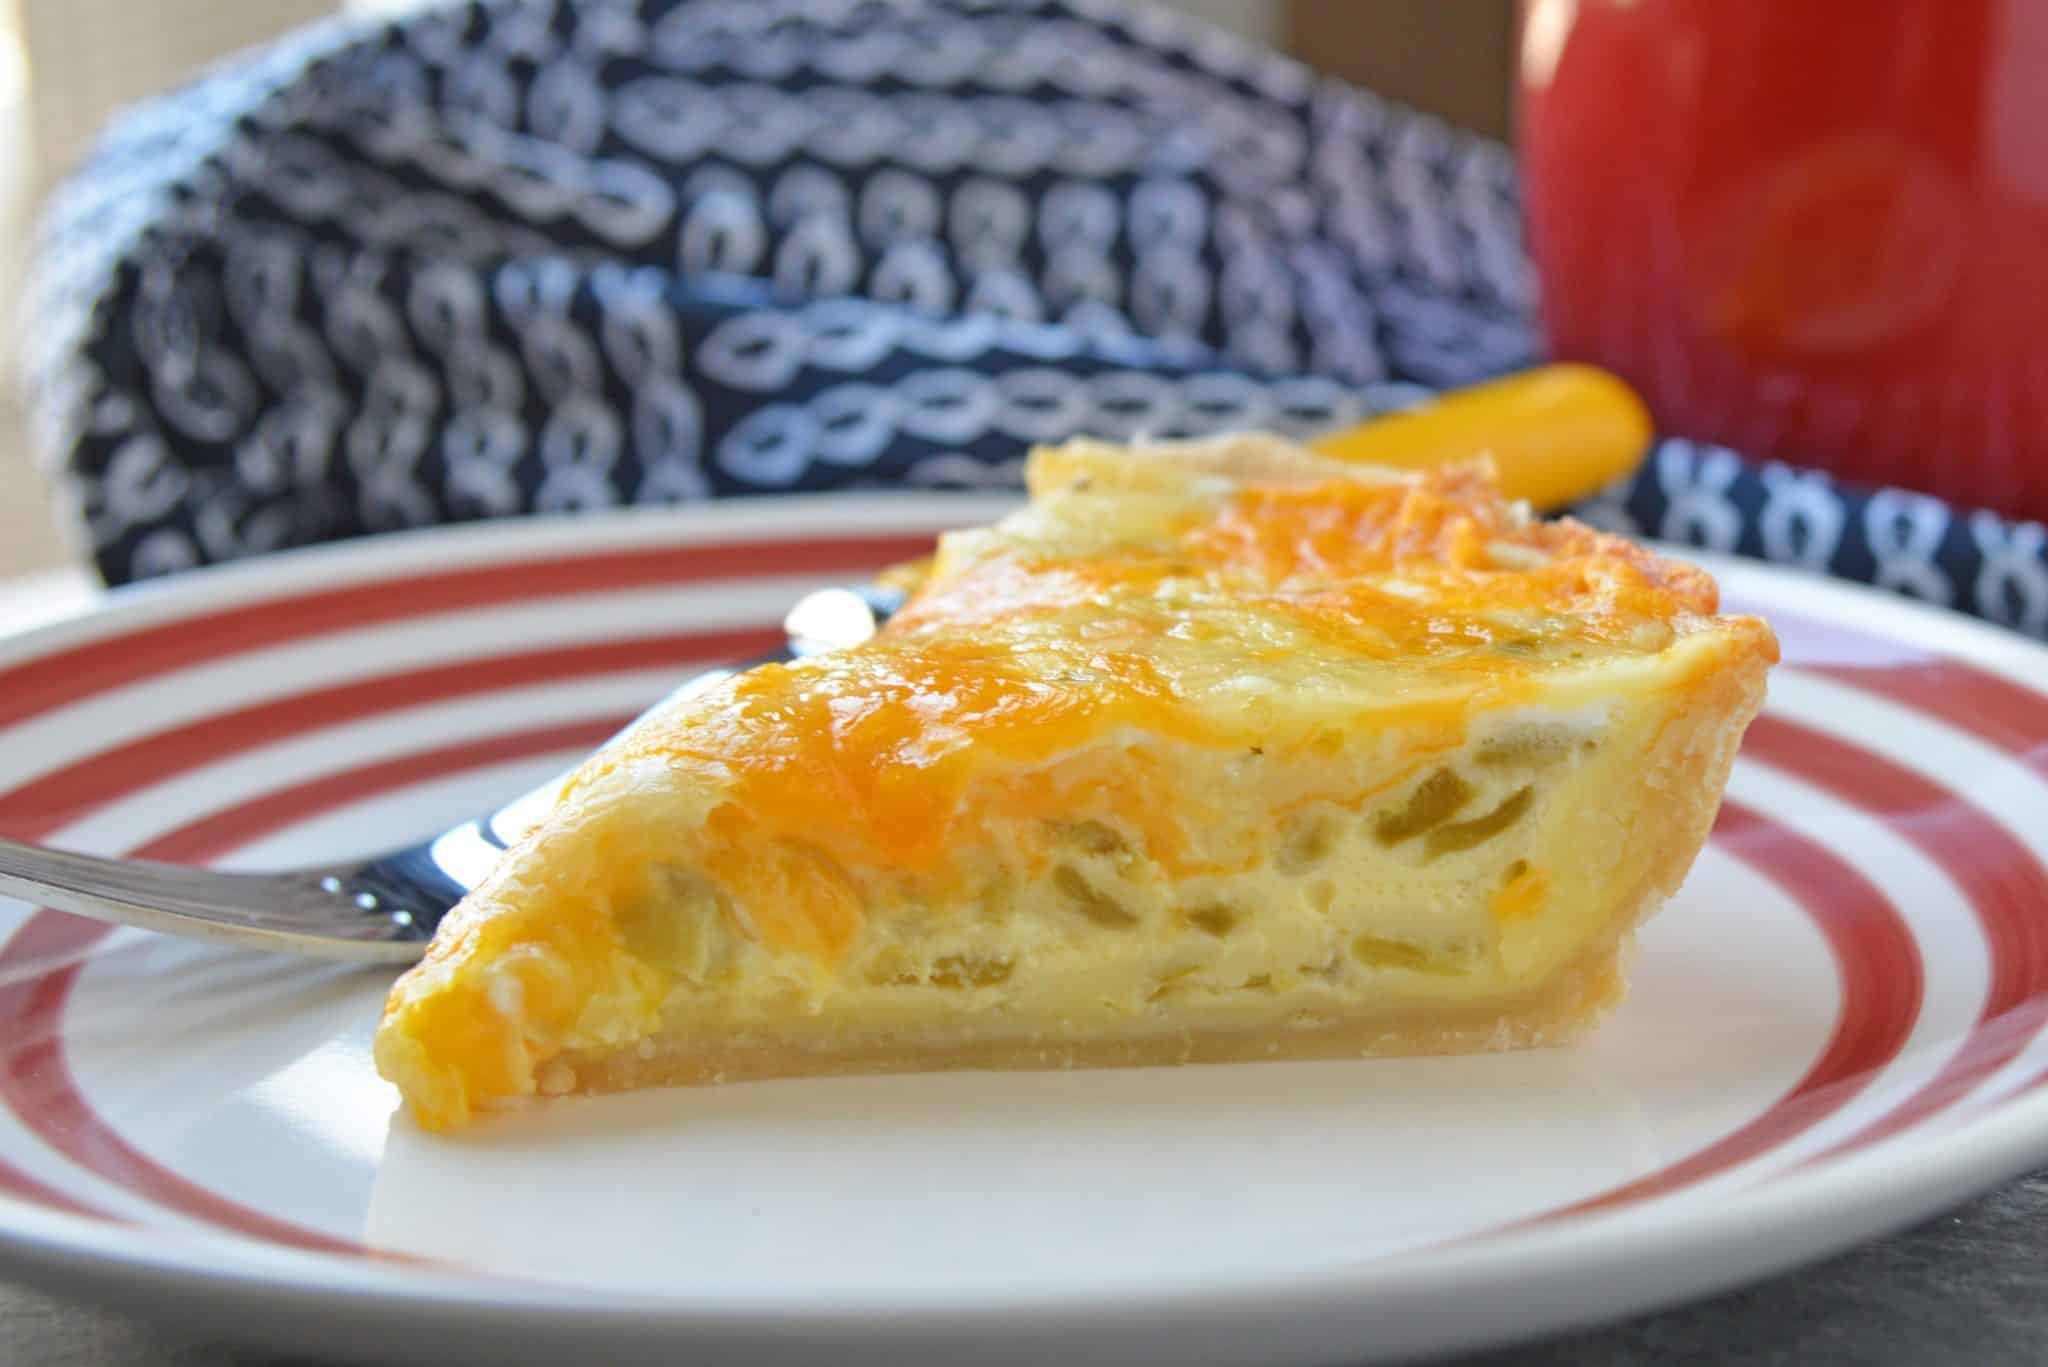 Chile Relleno Quiche is the perfect brunch recipe! It's loaded with flavor from hatch chiles, two kinds of cheese, and spices! #quicherecipe #bestquicherecipe #cheesyquiche www.savoryexperiments.com